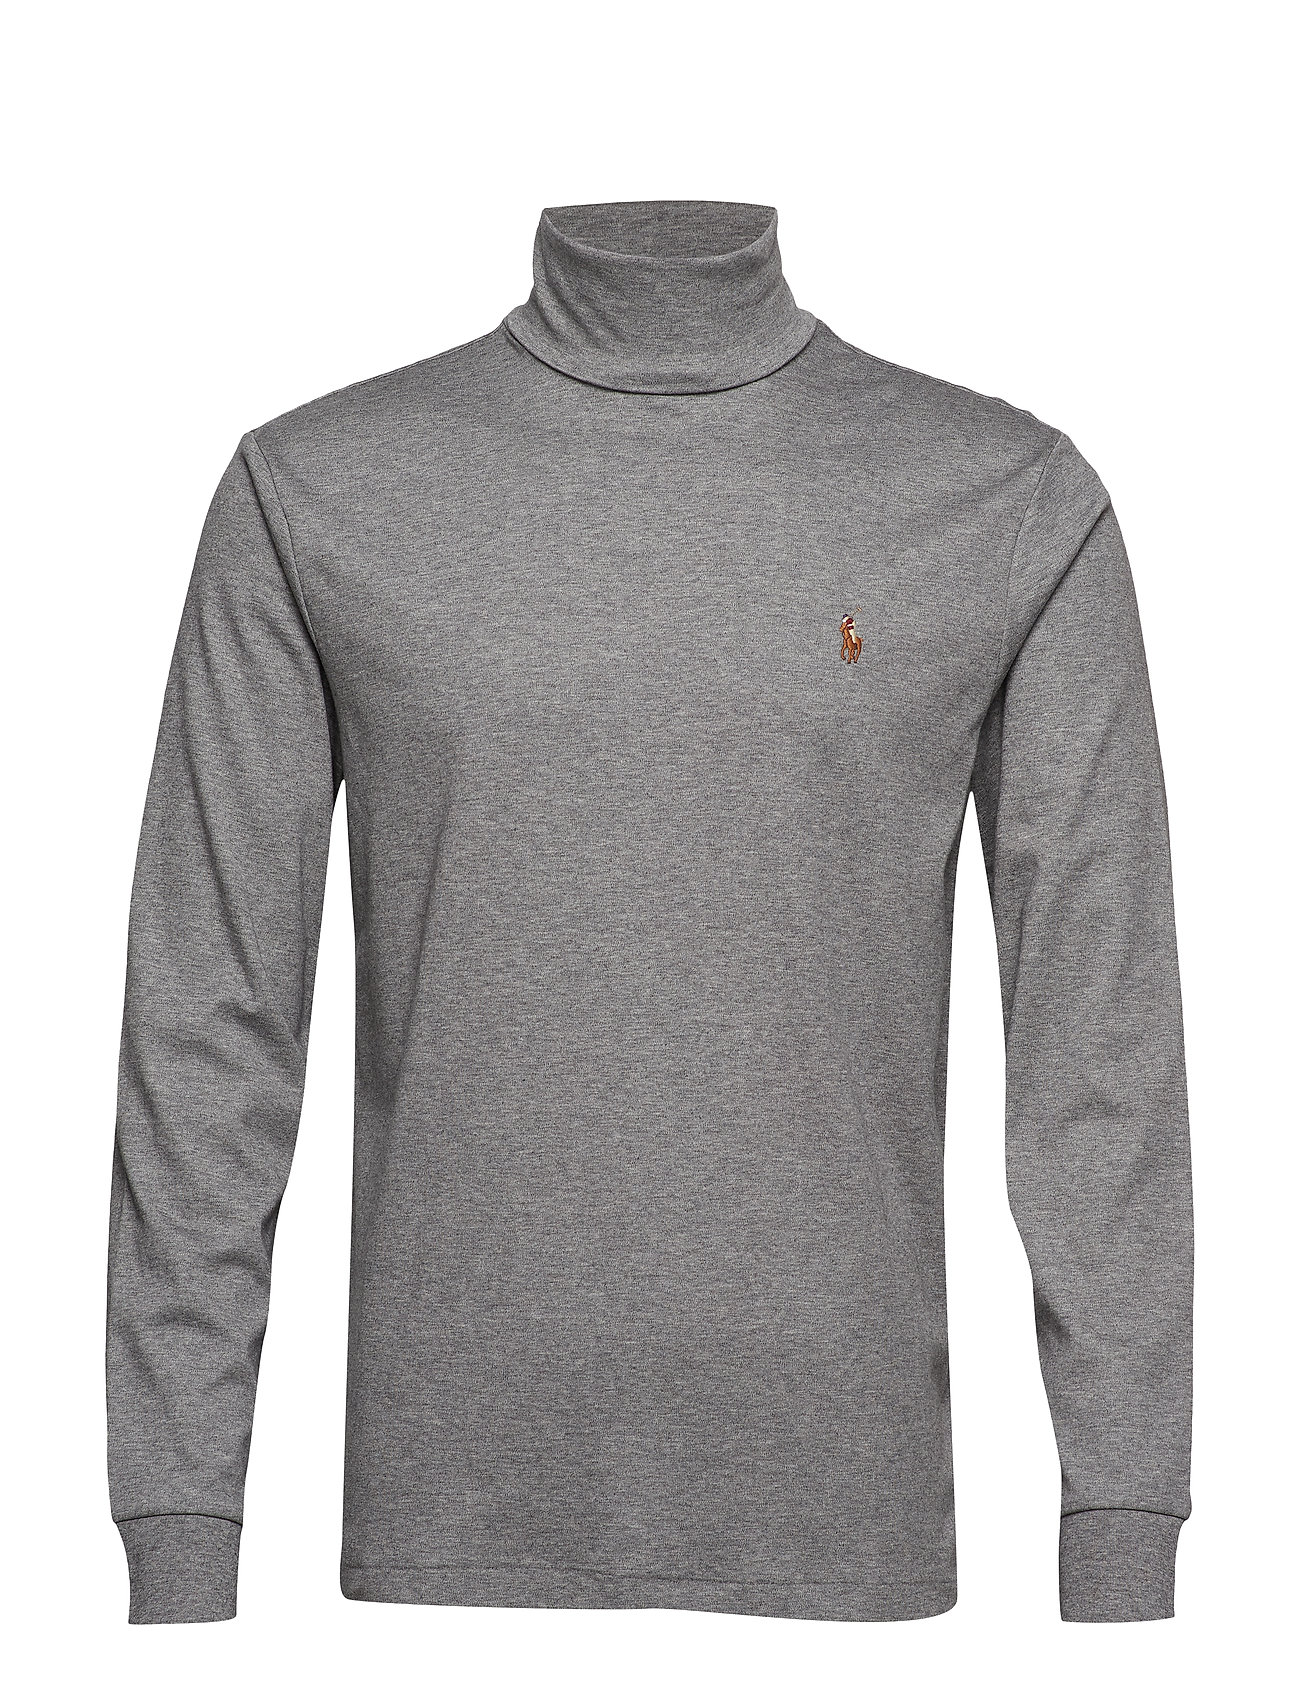 Polo Ralph Lauren LSTURTLEM1-LONG SLEEVE-KNIT - BOULDER GREY HEAT